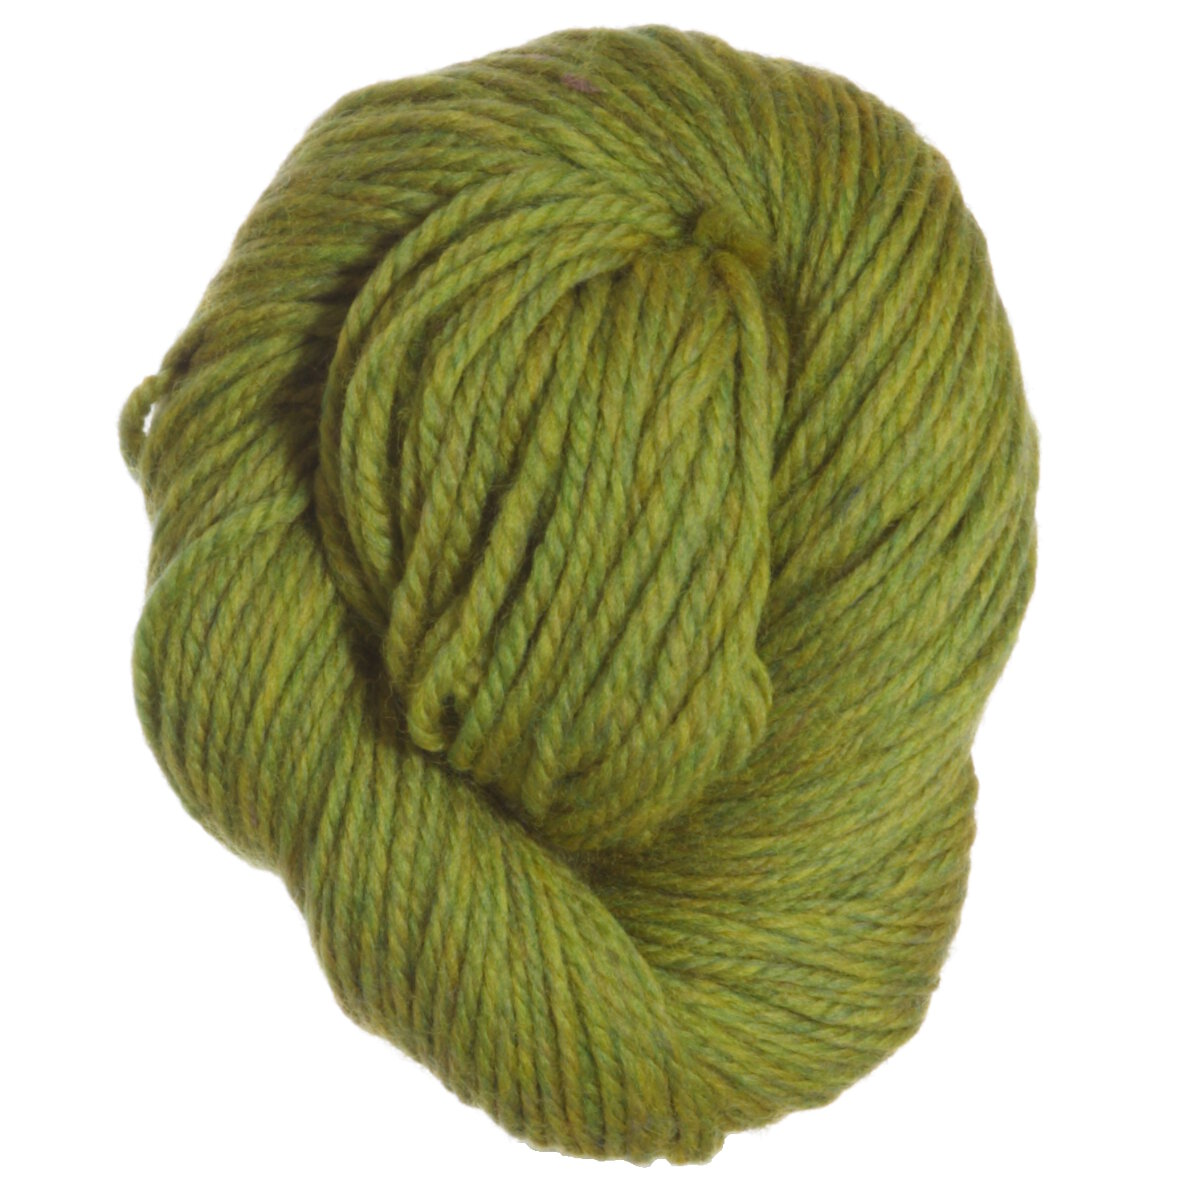 ... Palace Allegro Aran Yarn - 9059 Pea Pod Reviews at Jimmy Beans Wool